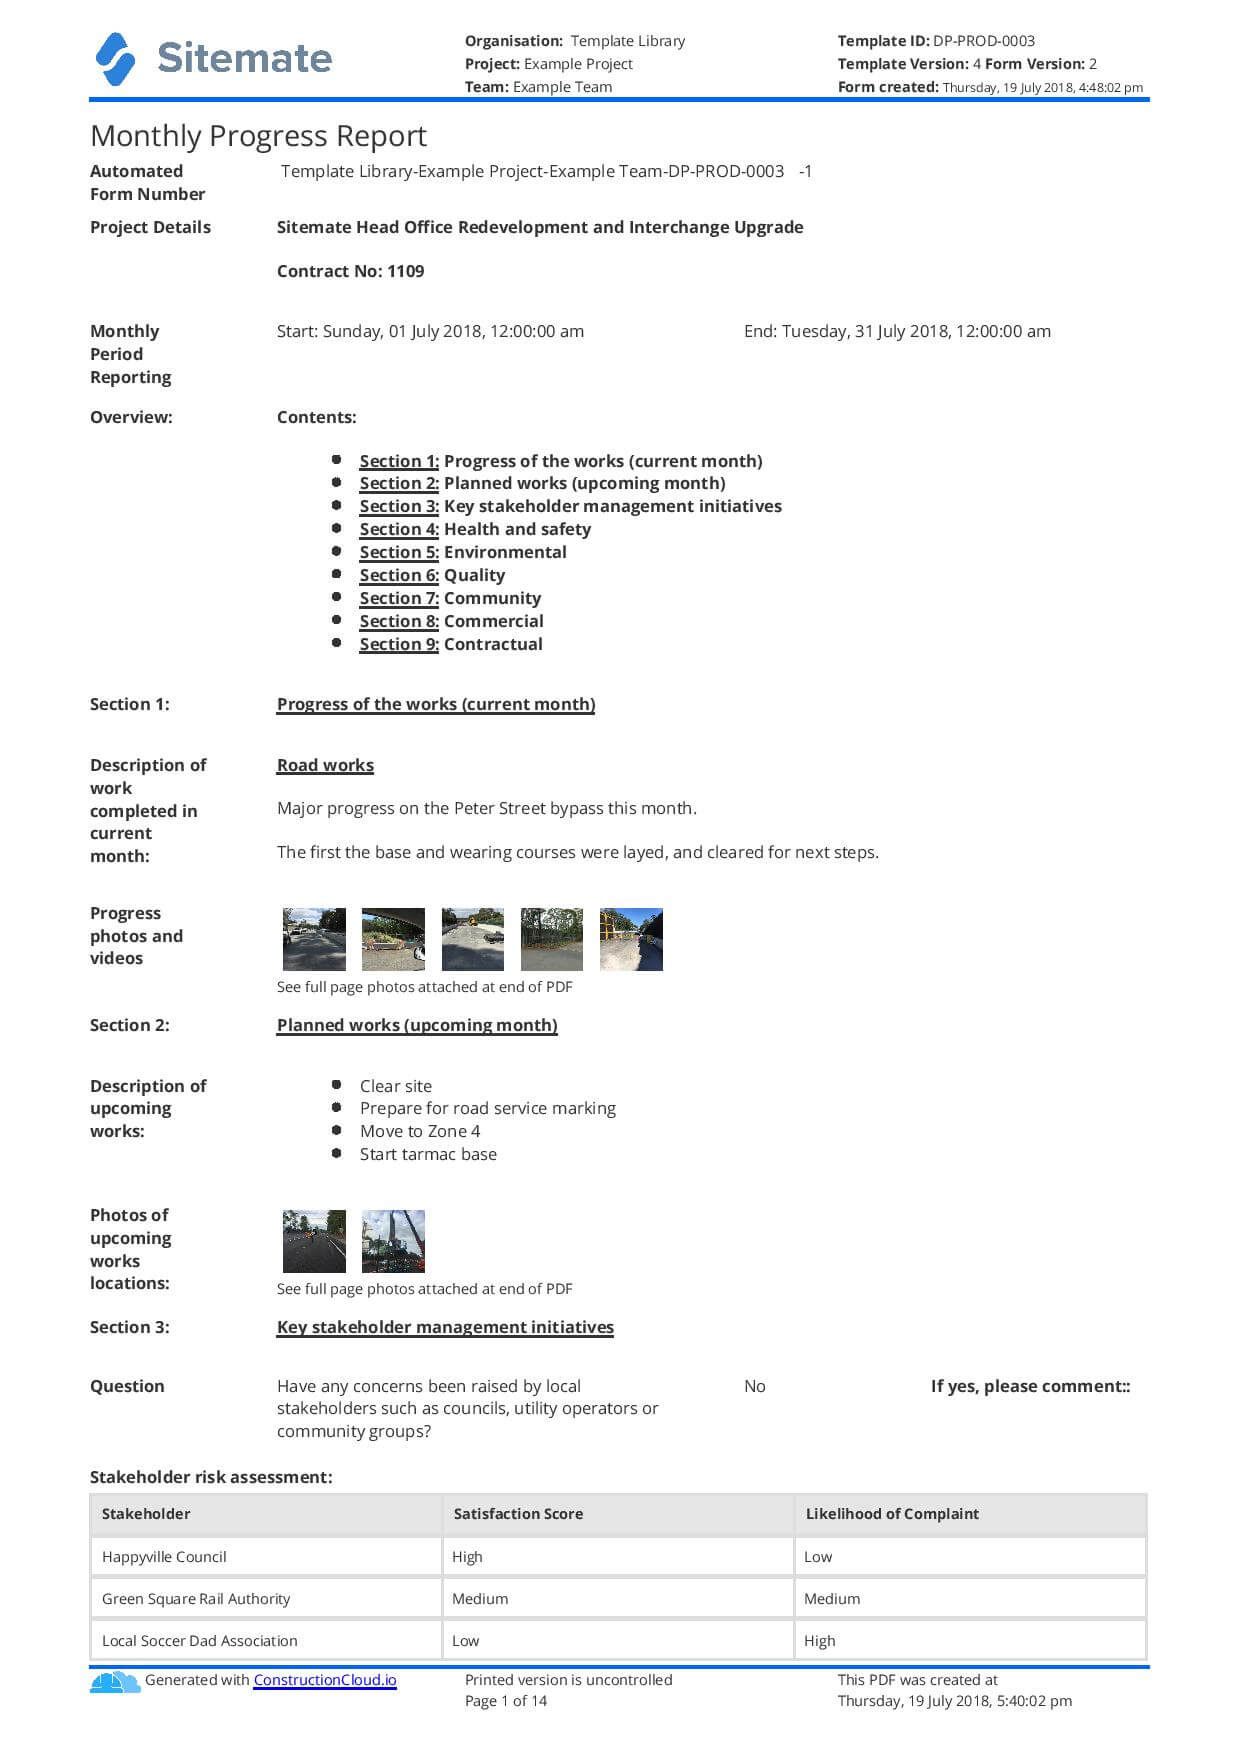 Monthly Construction Progress Report Template: Use This regarding How To Write A Monthly Report Template